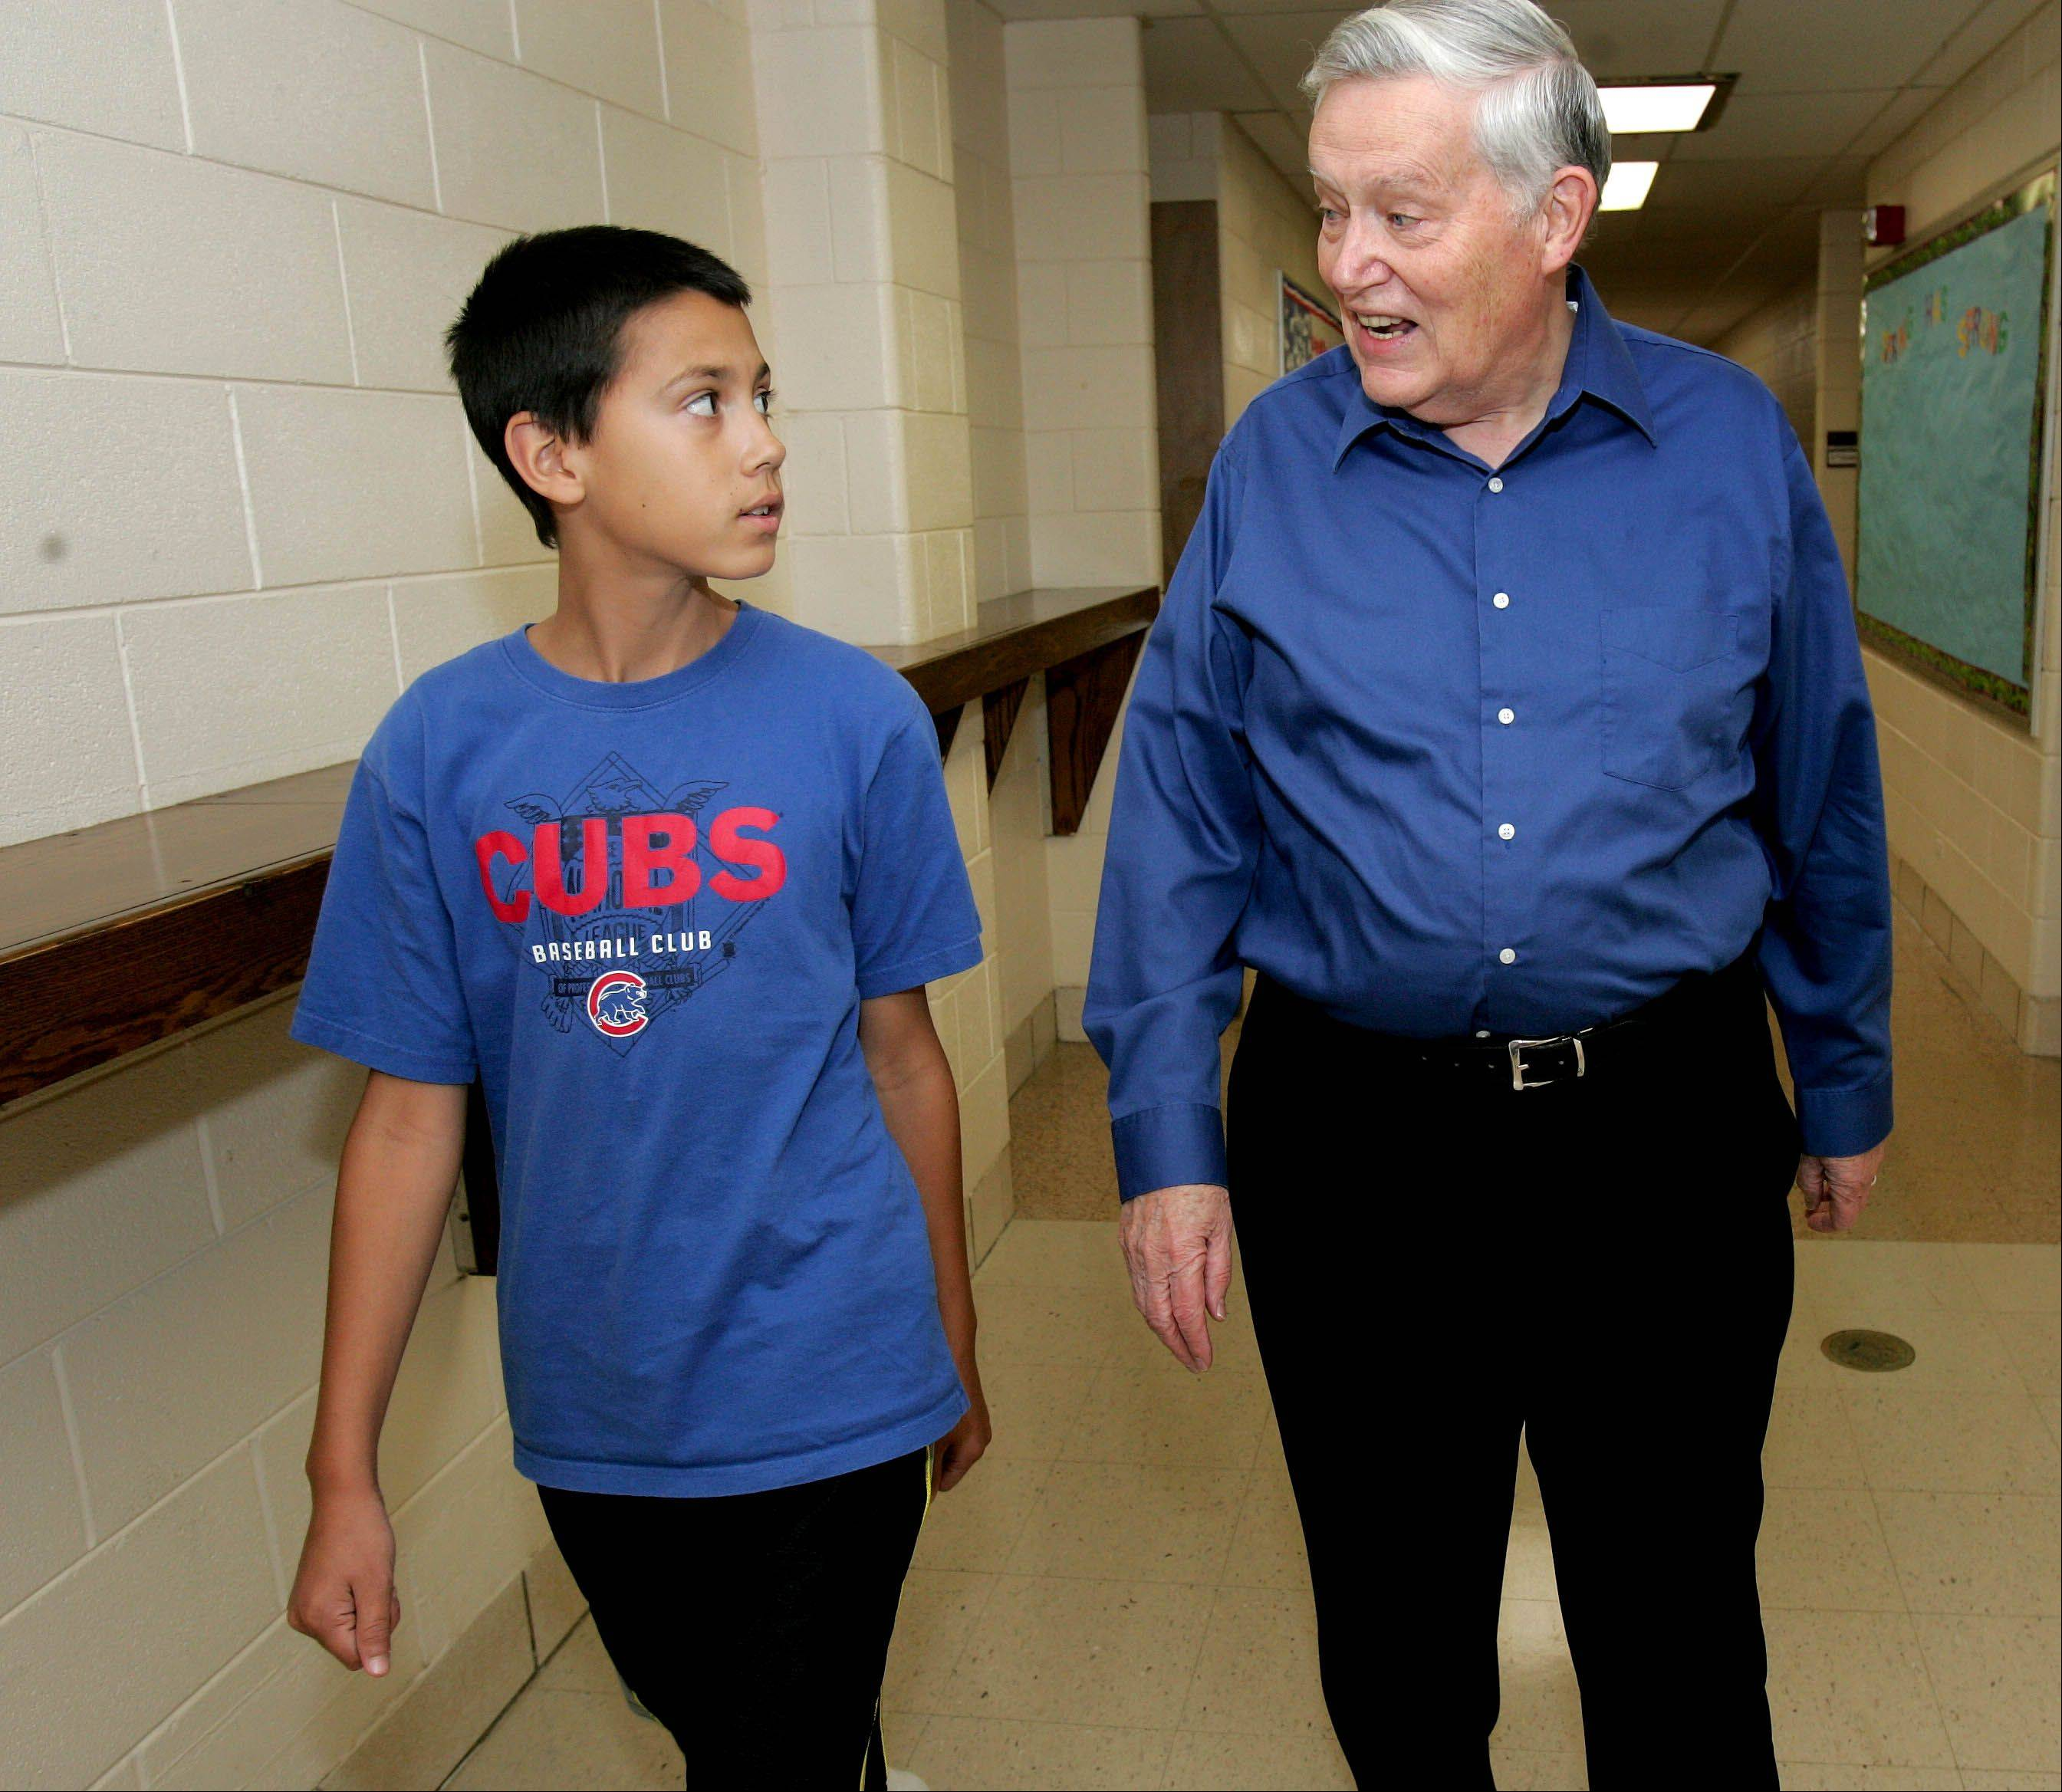 Ken Black of Roselle walks down the hall with Joey Sandoval, 12, at Trinity Lutheran Church in Roselle, where Joey is enrolled in summer camp. Joey's mentor, Black, started the Adults Involved in Mentoring Students while working with the senior ministry at the church nine years ago. AIMS now serves students in five elementary districts, Lake Park High School District 108 and Trinity Lutheran School.